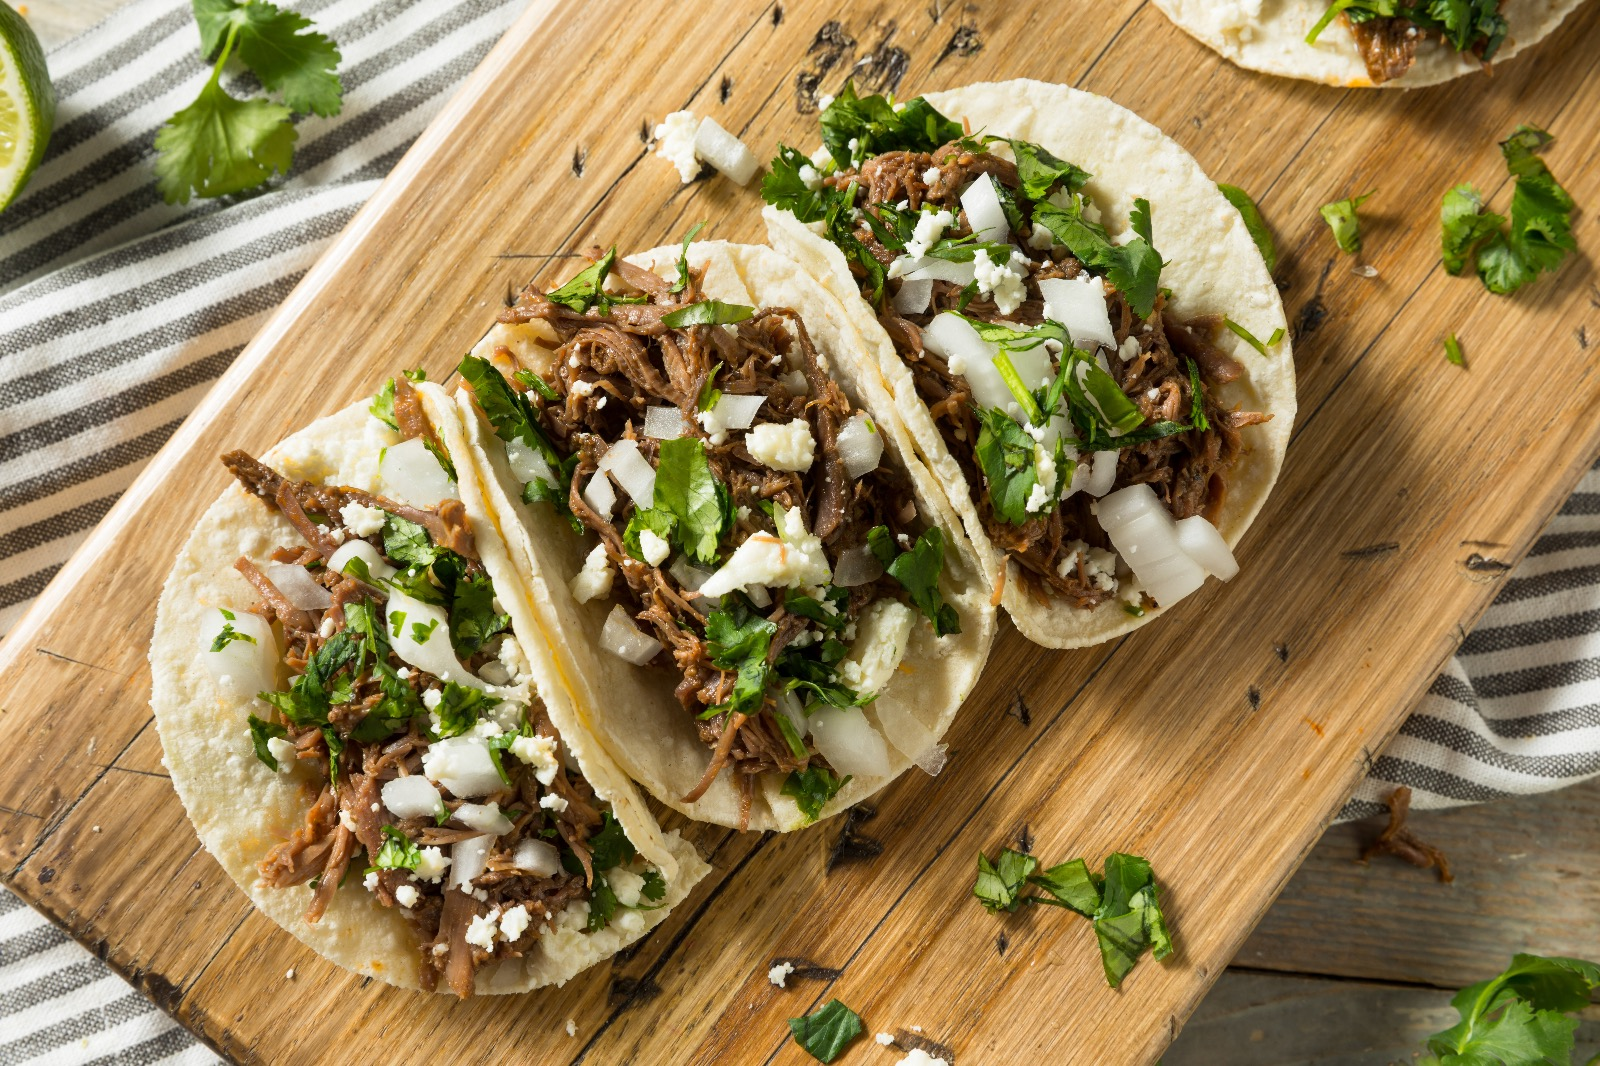 Wild Boar Carnitas Tacos You Need To Make This Summer - Beck & Bulow